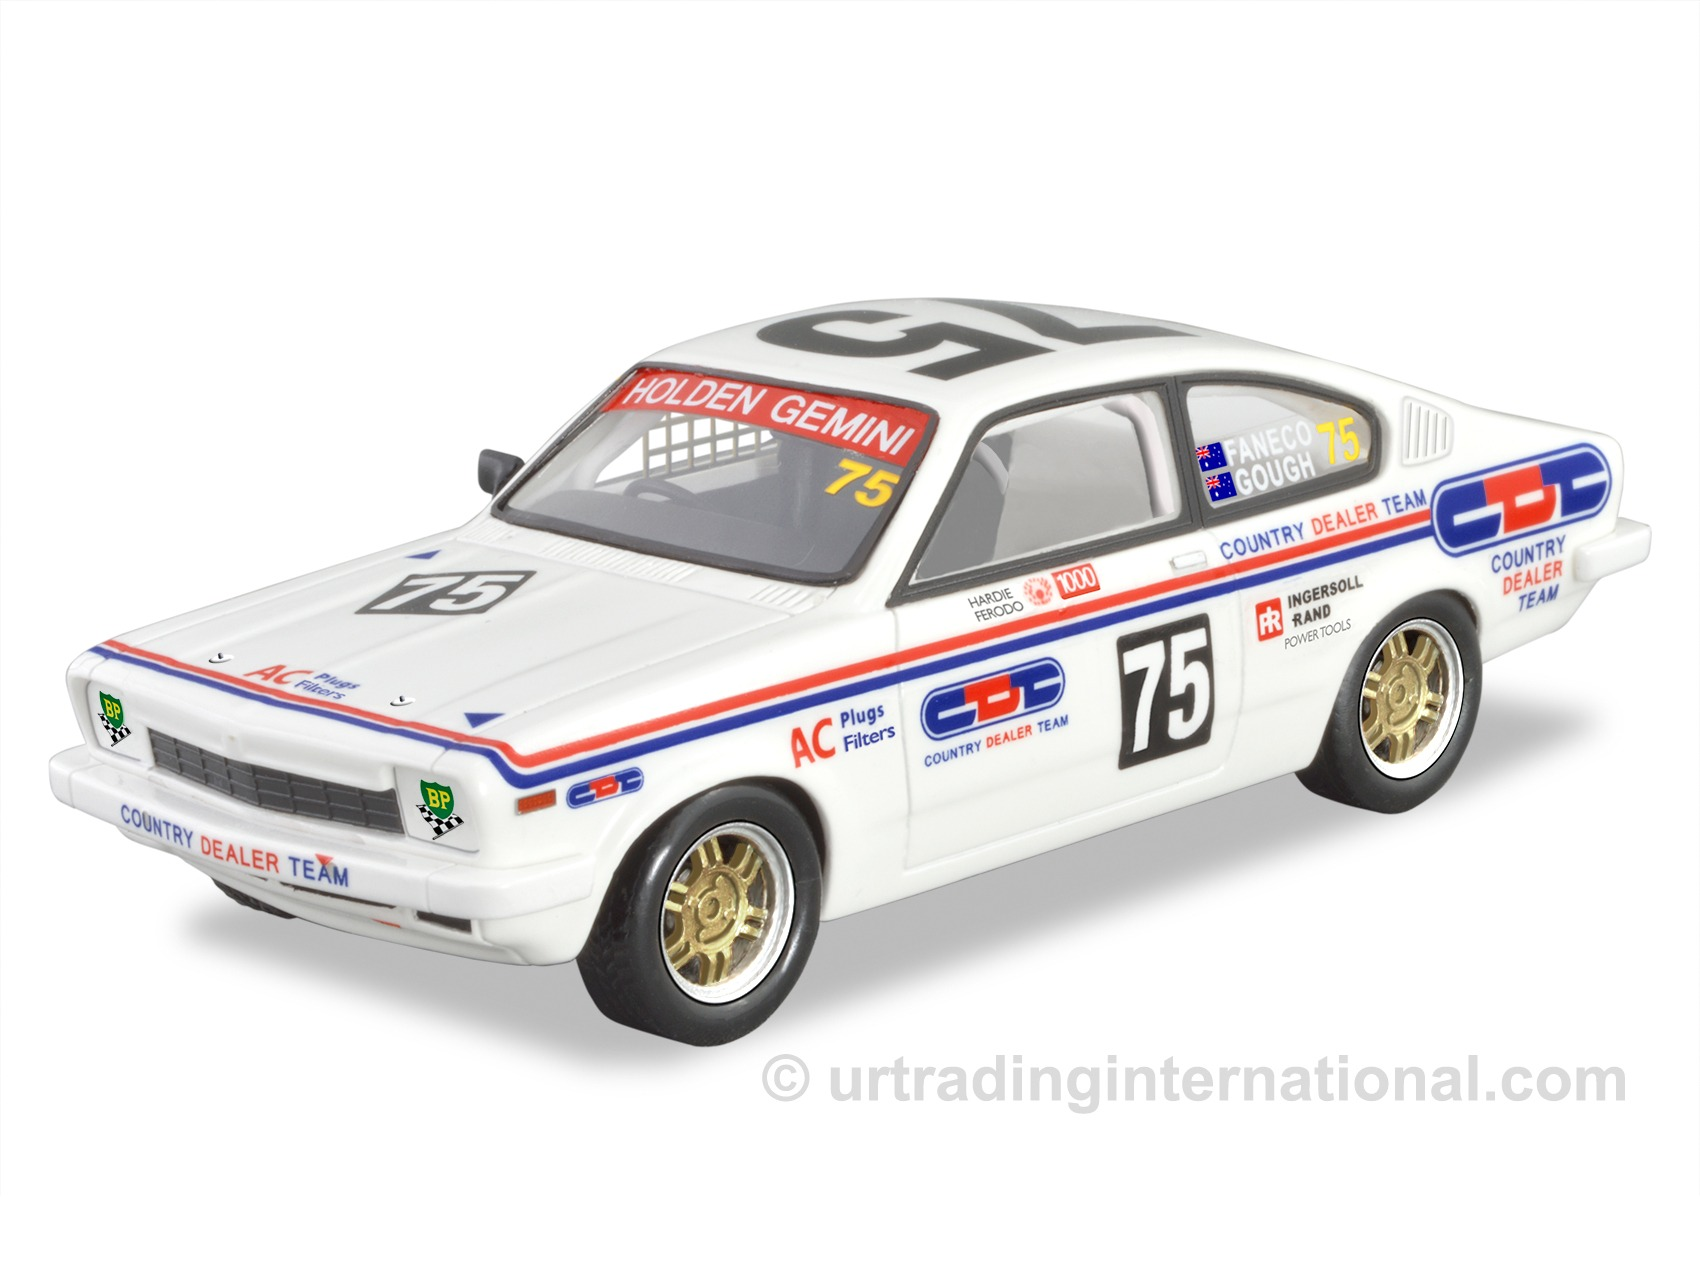 Gemini TD Coupe Racing Car – Country Dealer Team/White